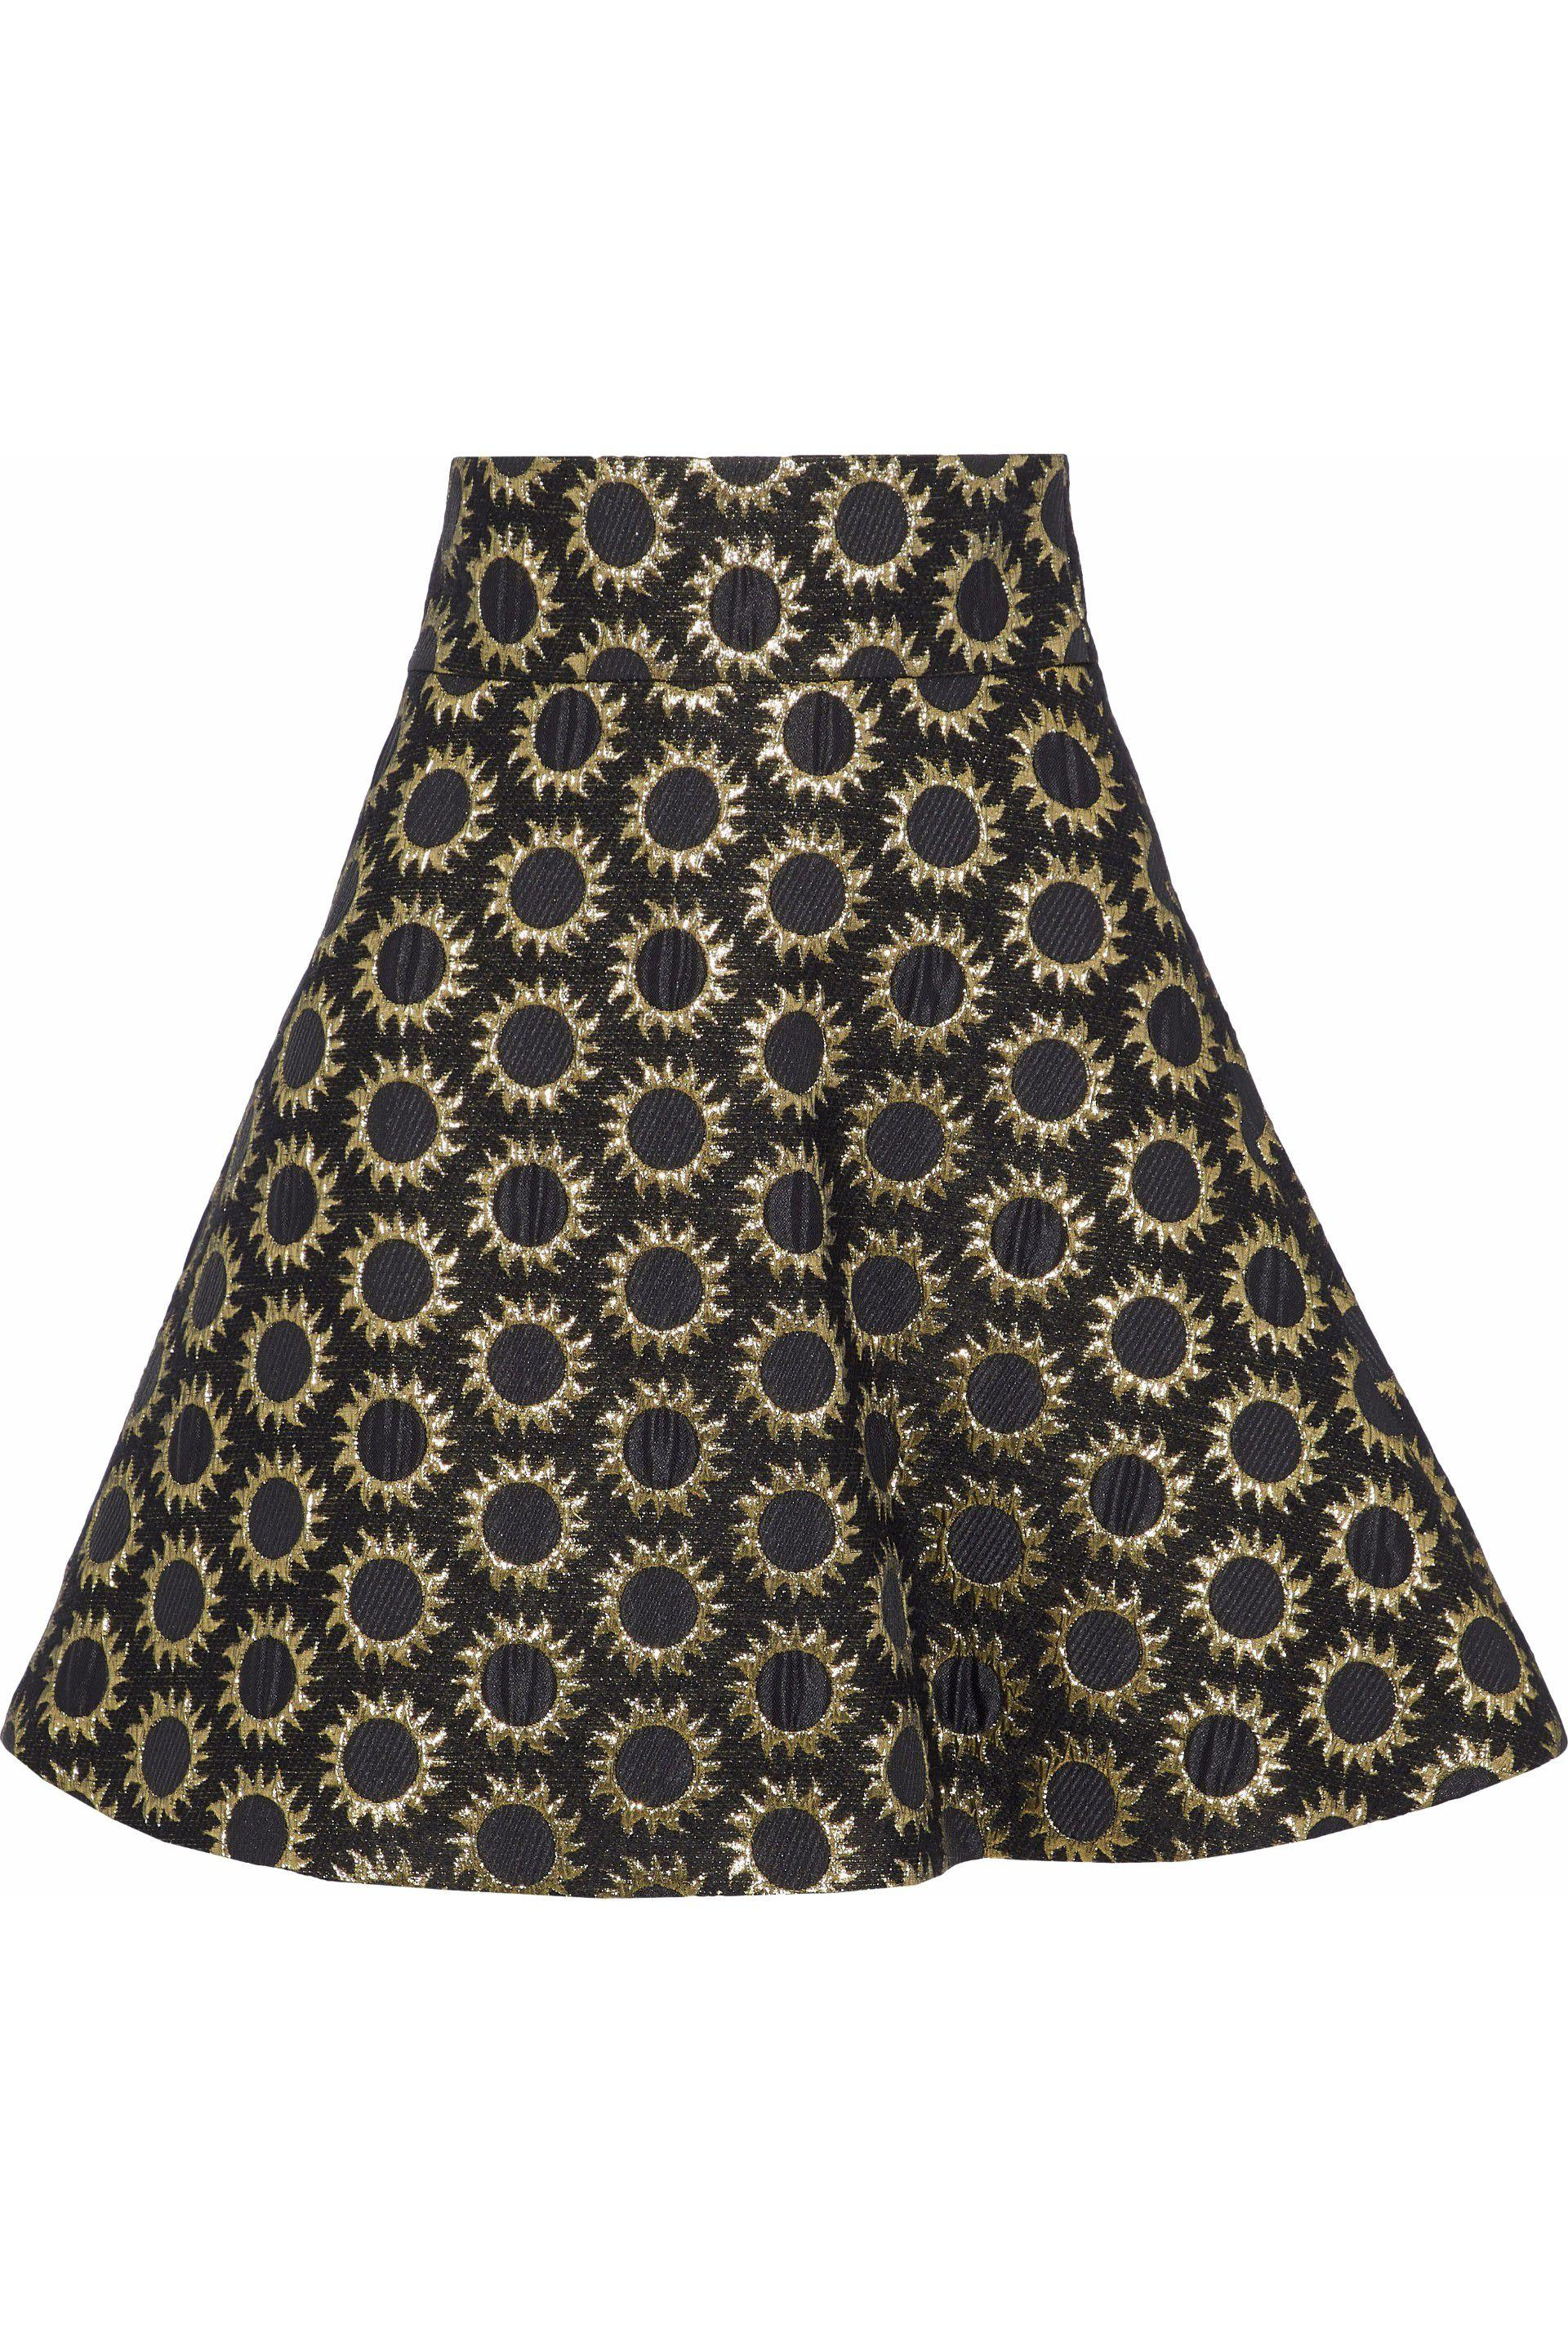 8458ce0782 Lyst - RED Valentino Woman Flared Metallic Jacquard Mini Skirt Black ...